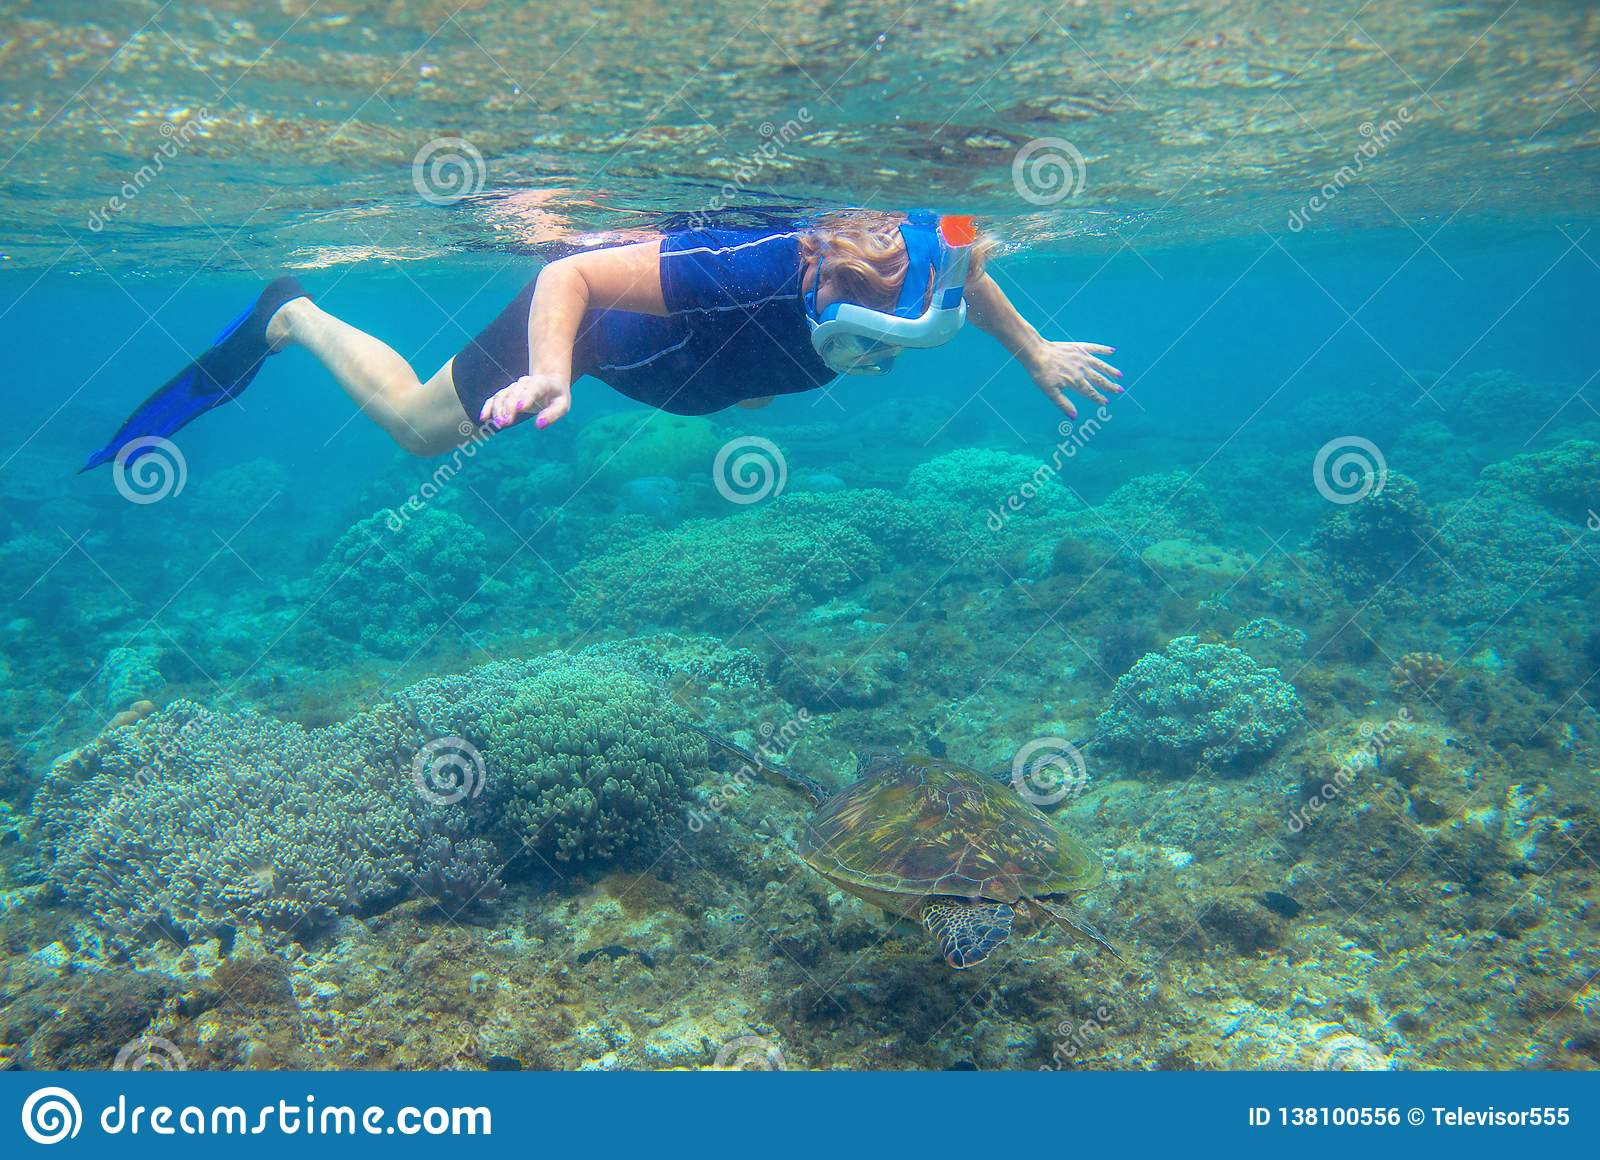 Snorkeling with sea turtle. Snorkel in coral reef of tropical sea. Woman in full-face snorkeling mask